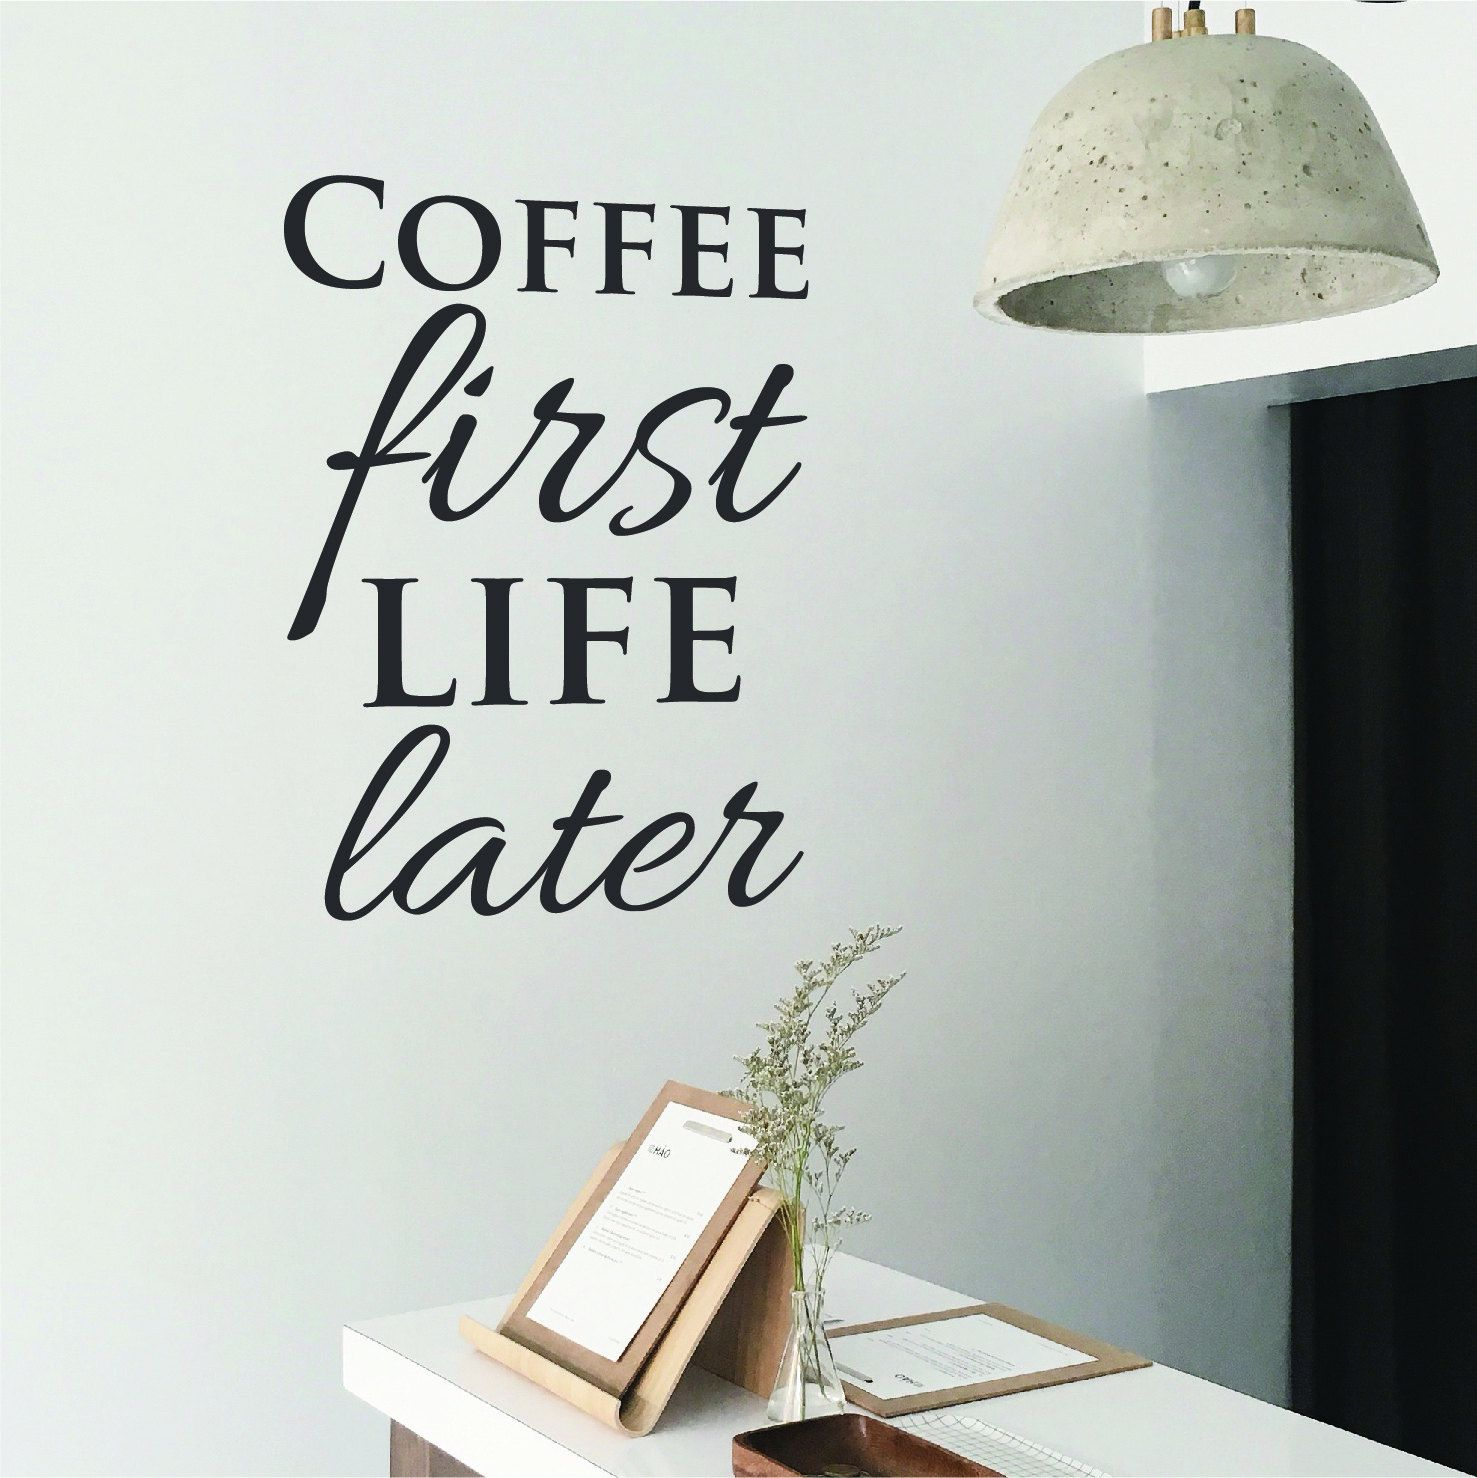 Coffee decor wall decal coffee wall art sticker quote cafe decor